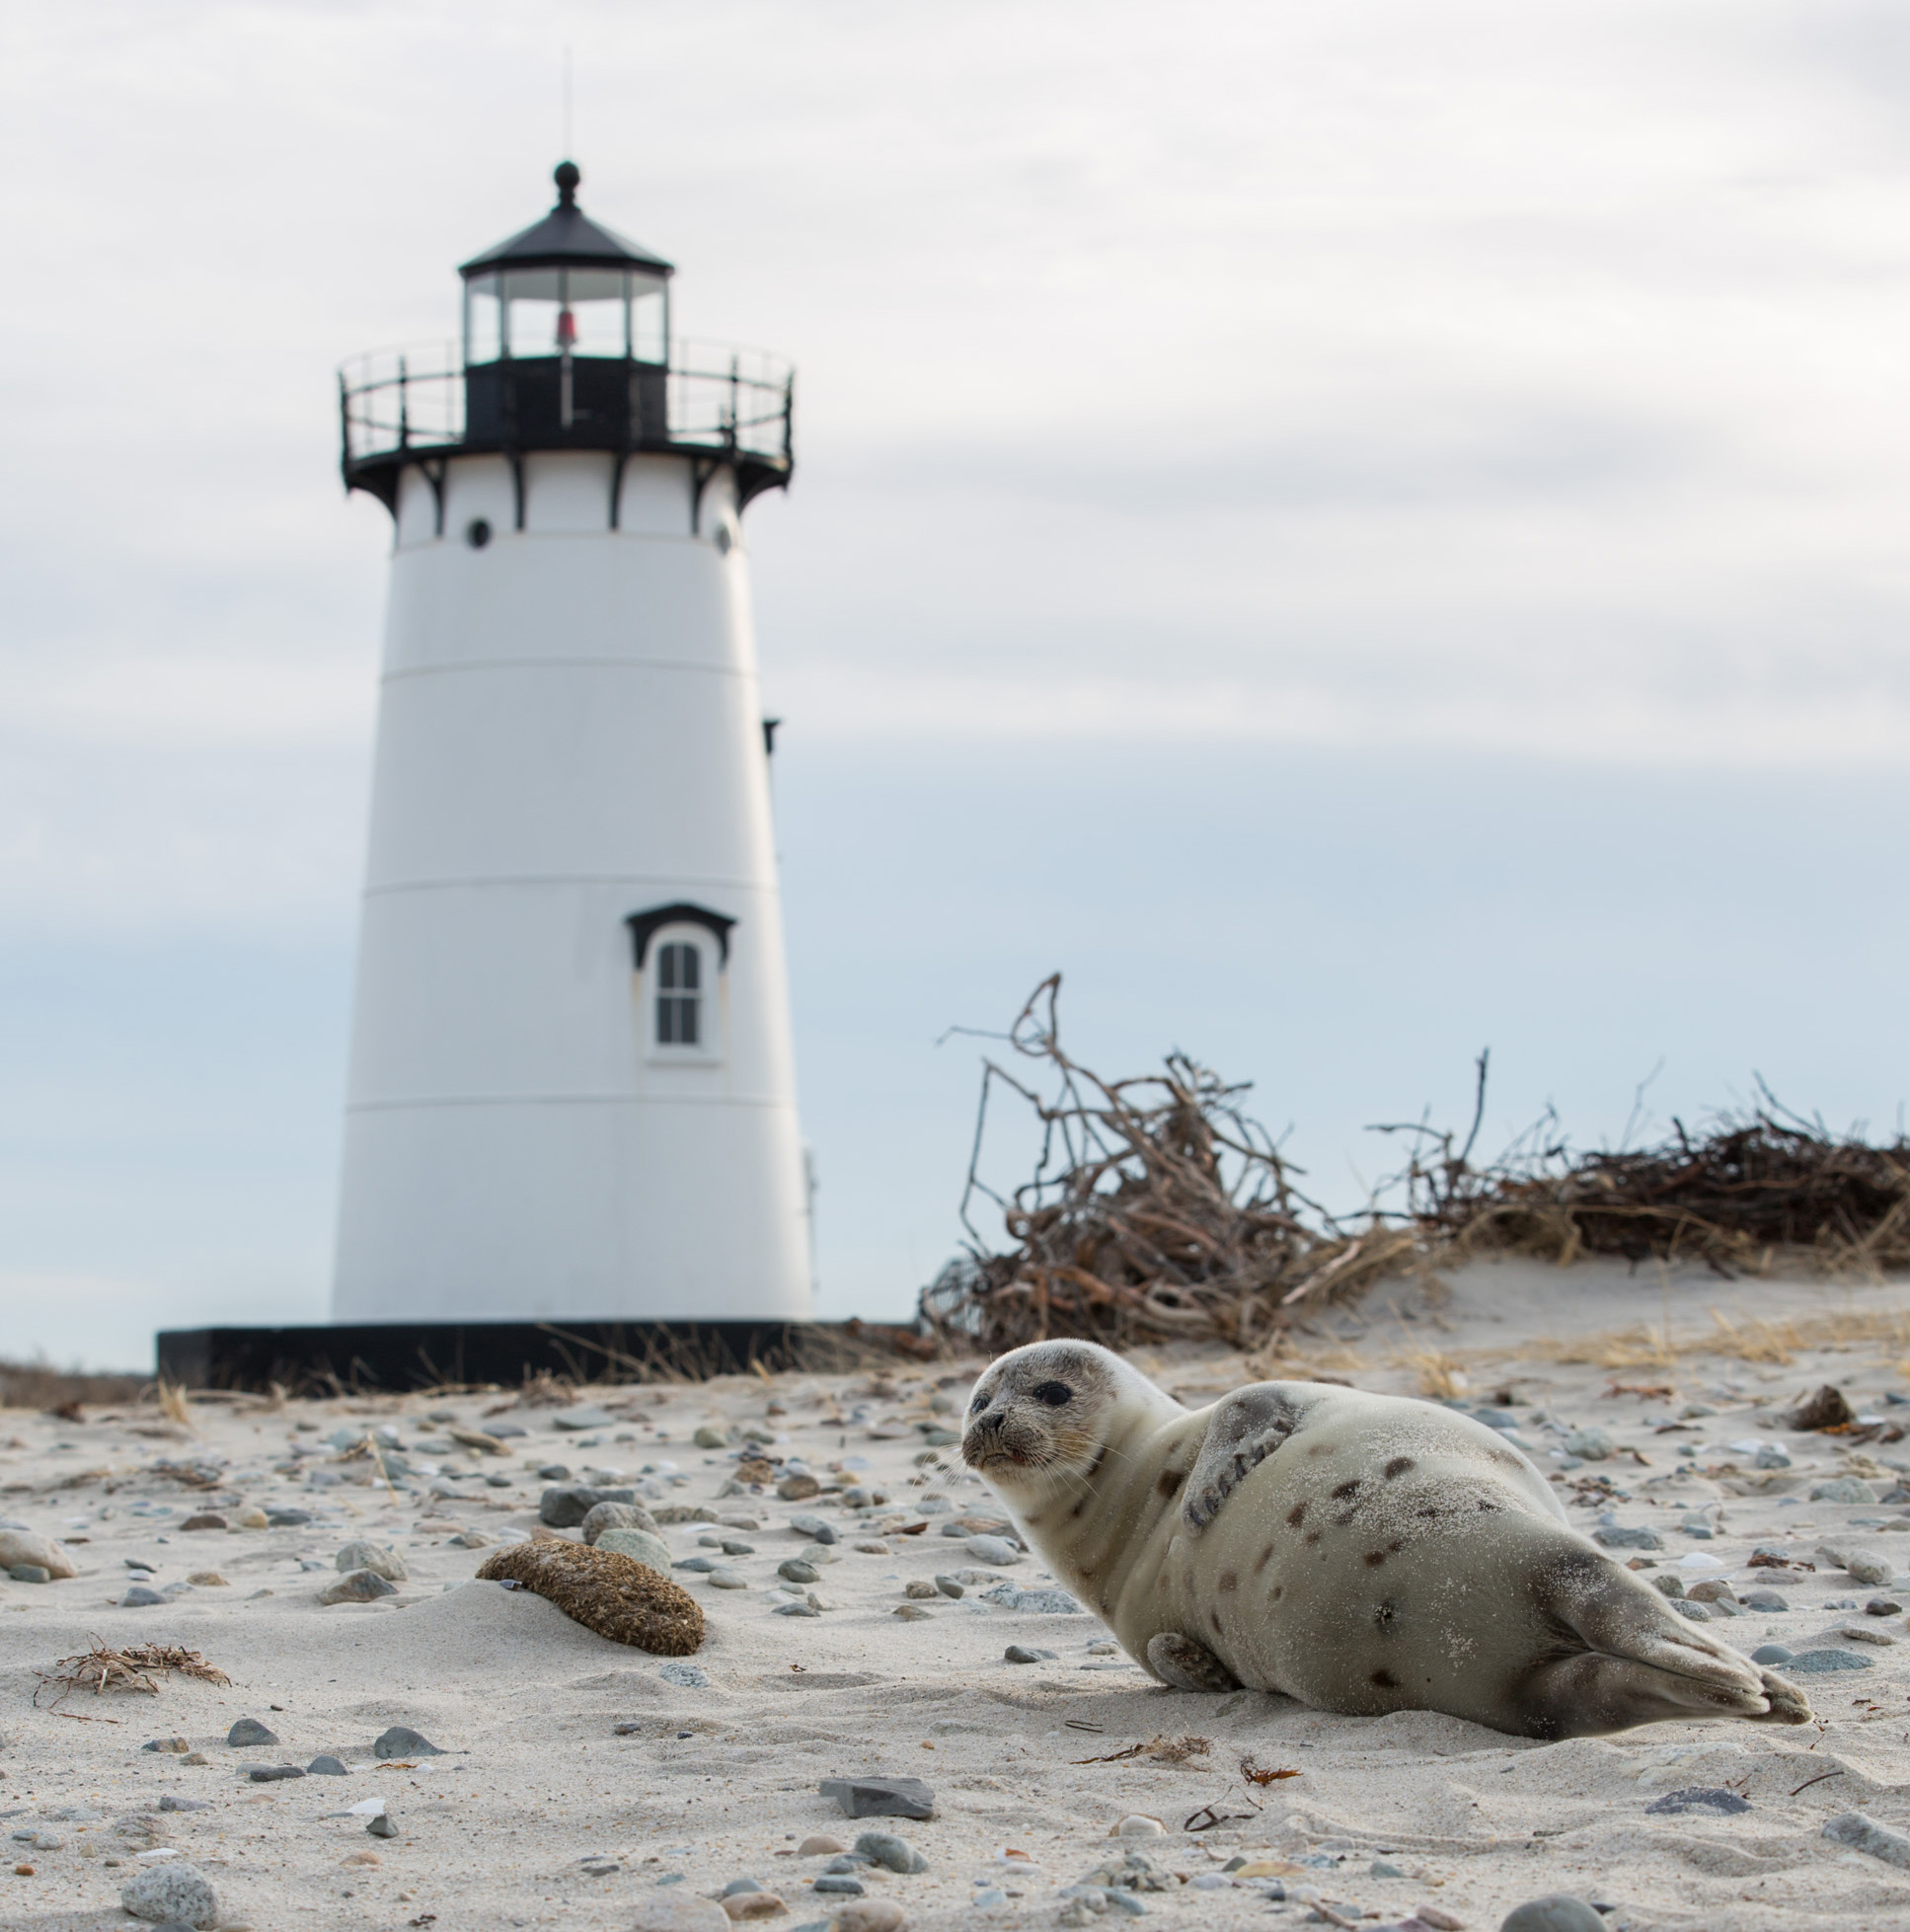 3.25 LIGHTHOUSE SEAL